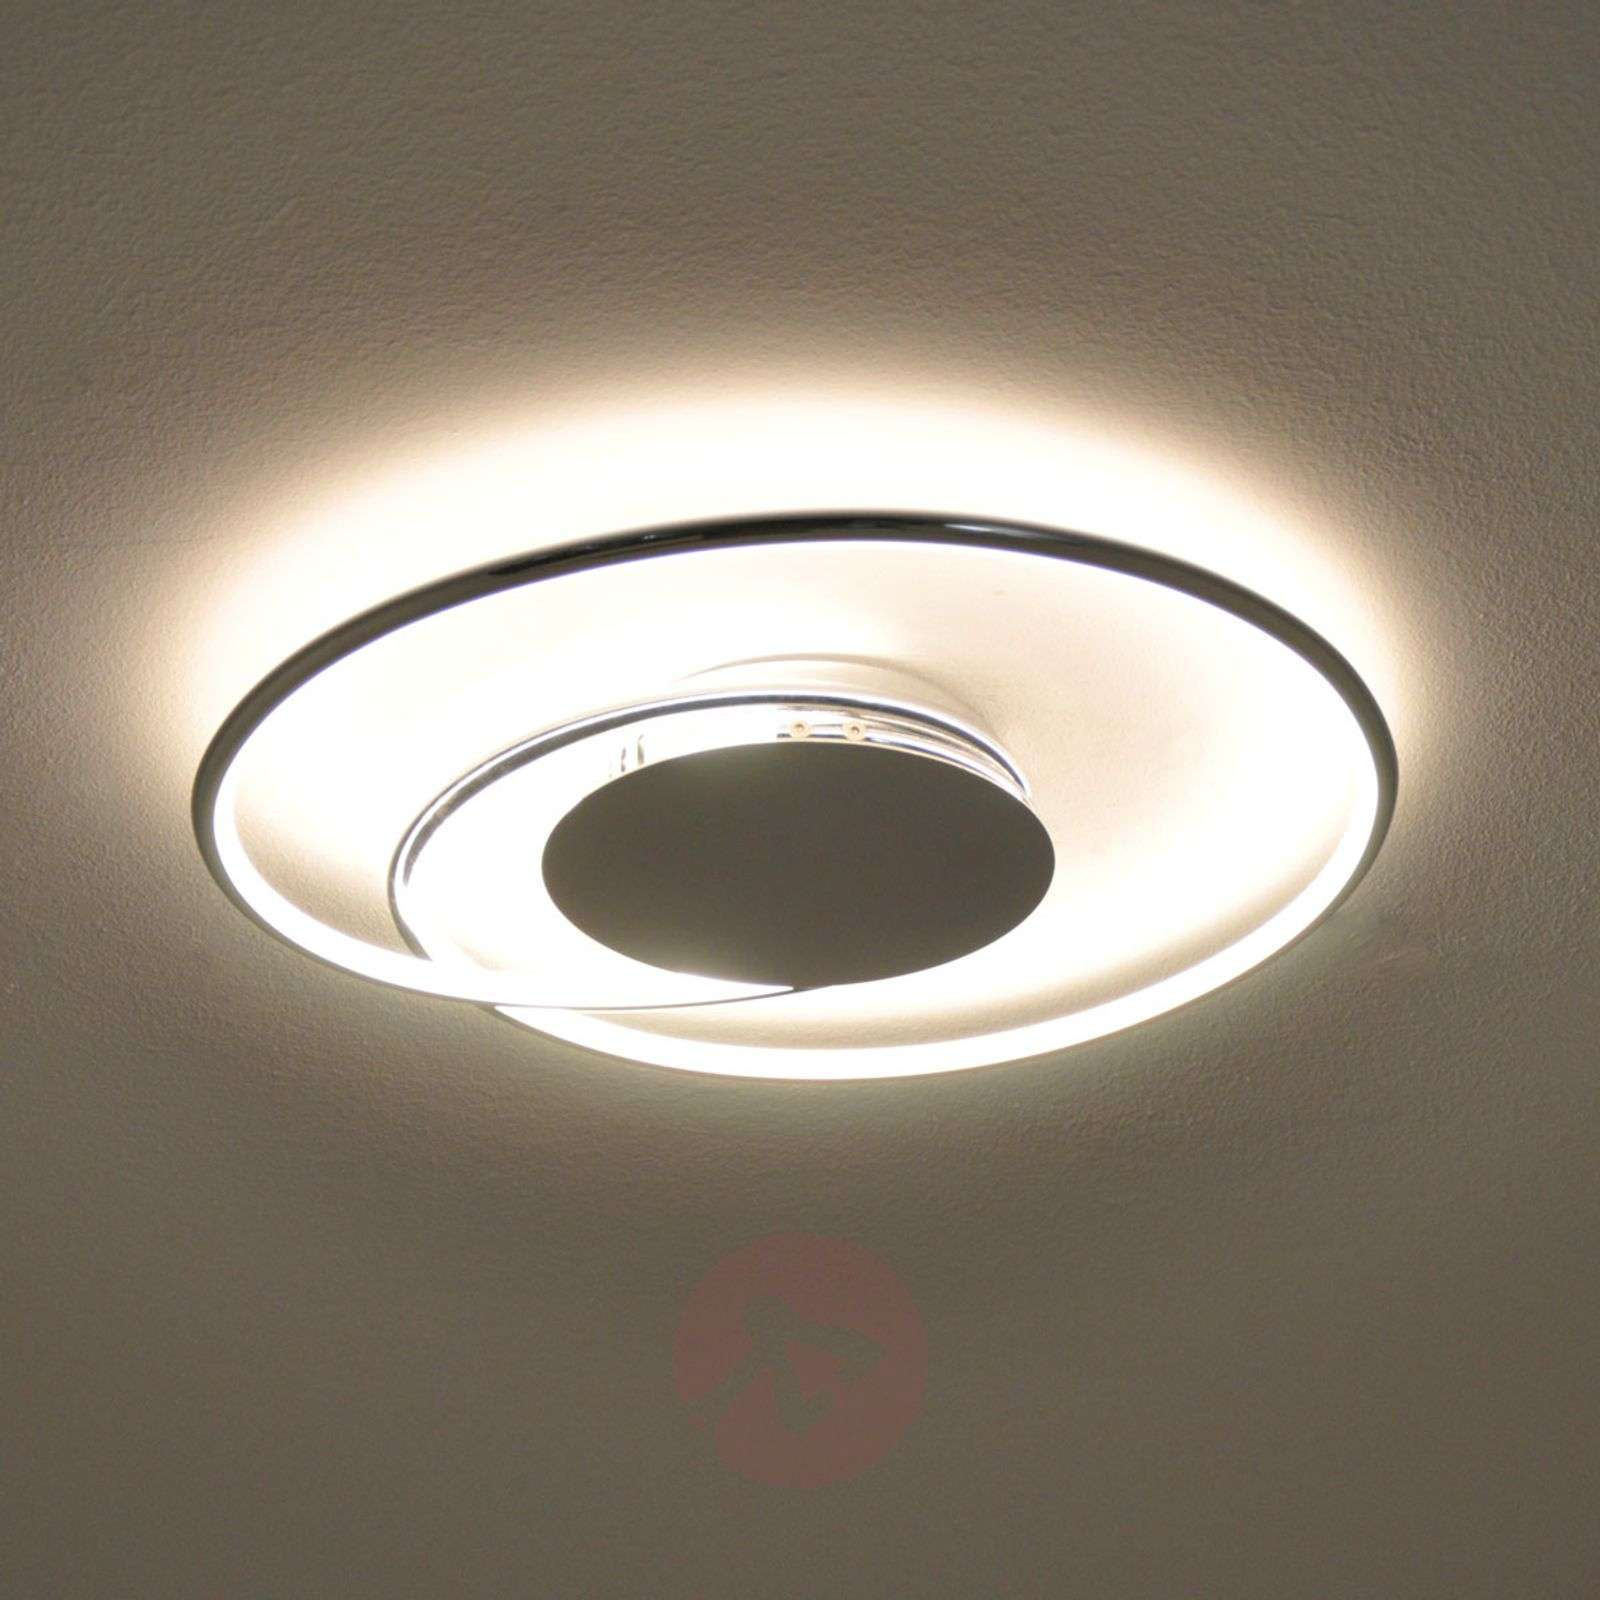 Joline pretty LED ceiling light